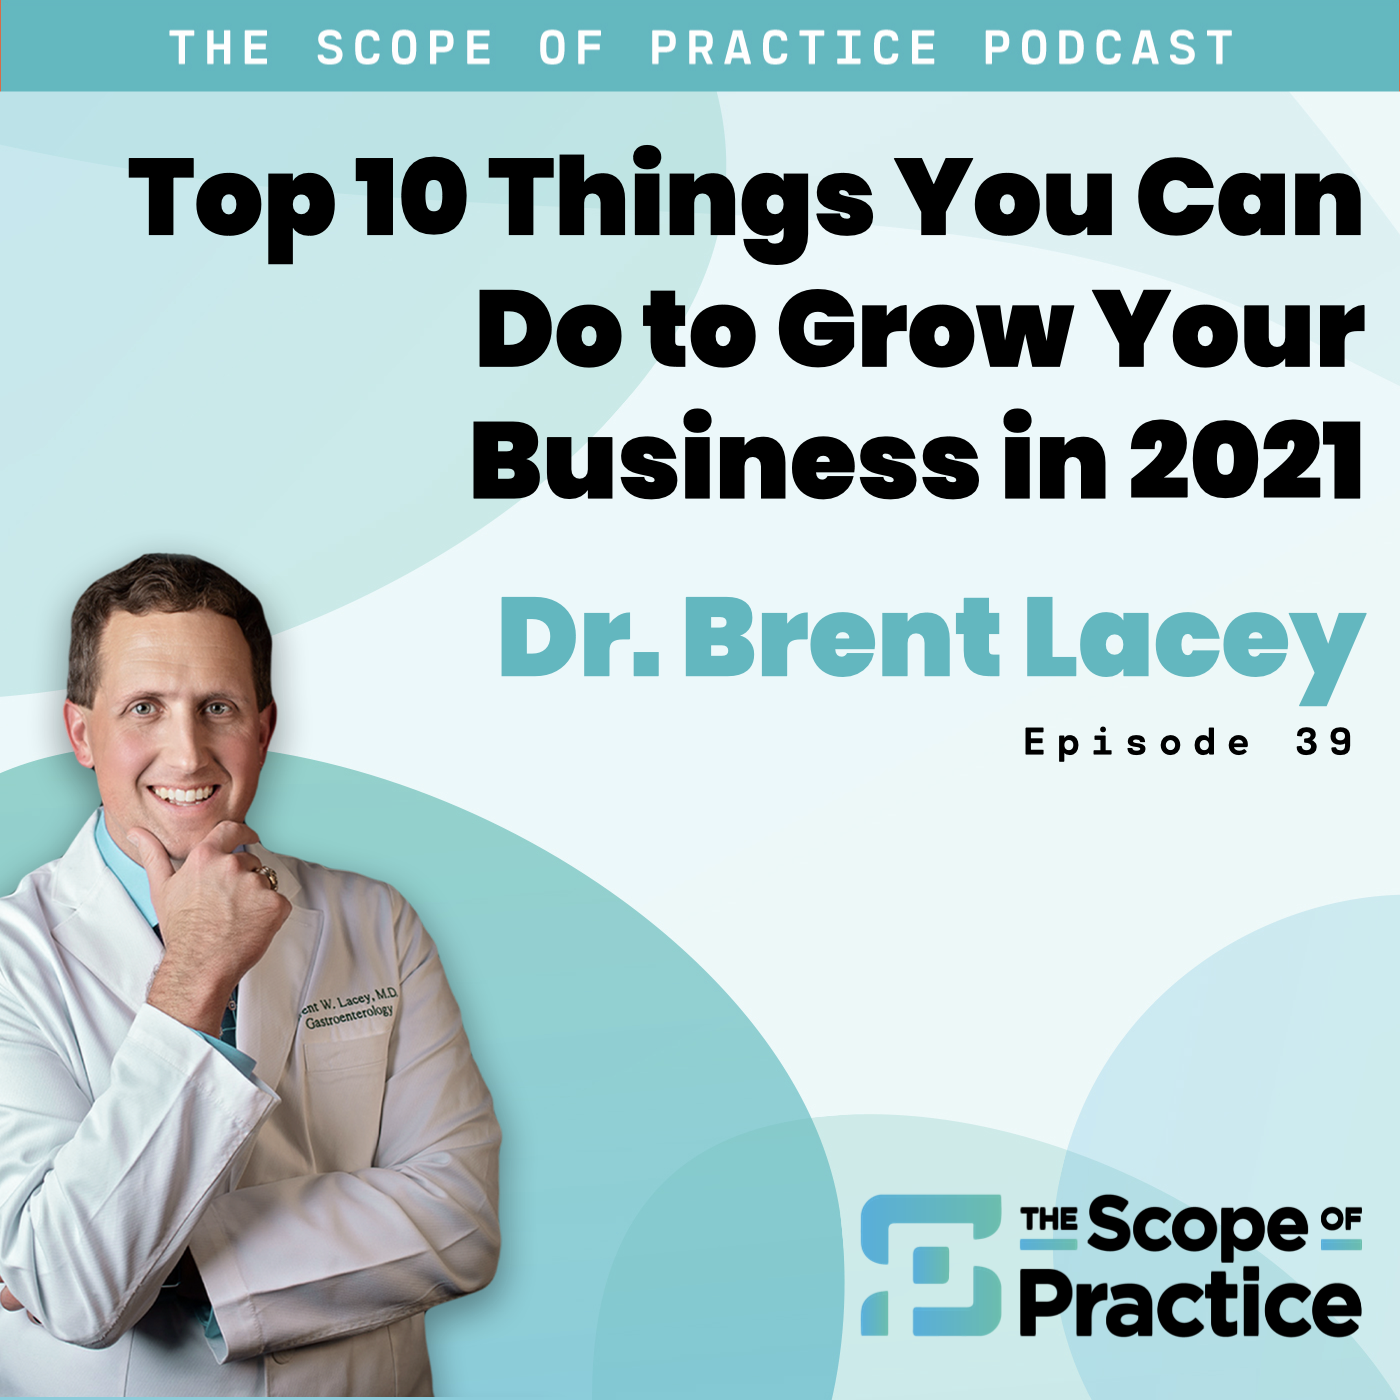 grow your business in 2021 with Dr. Brent Lacey